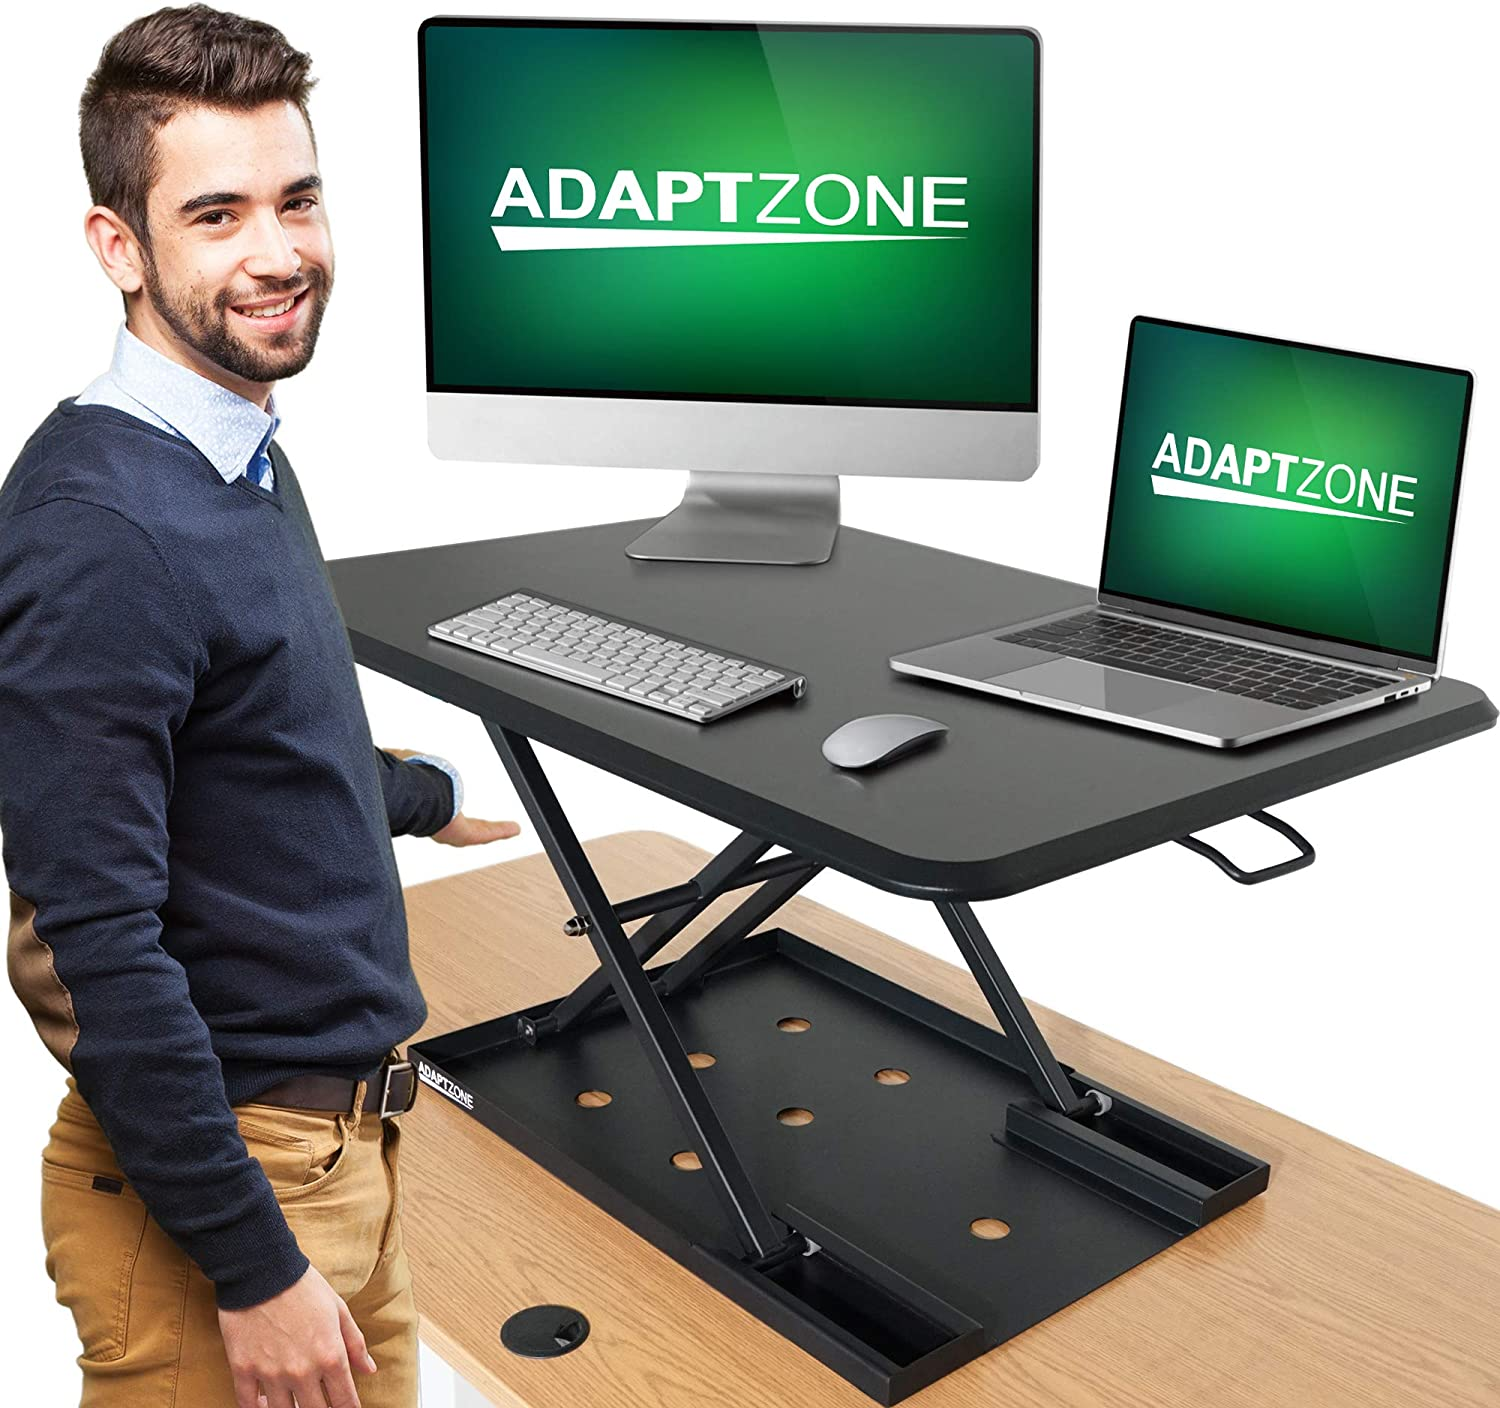 ADAPTZONE Standing Desk Converter, 33 Inch Sit Stand Up Desk Converter, Height Adjustable Workstation, Foldable Dual Monitor Desk Riser for Home Office, No Assembly!